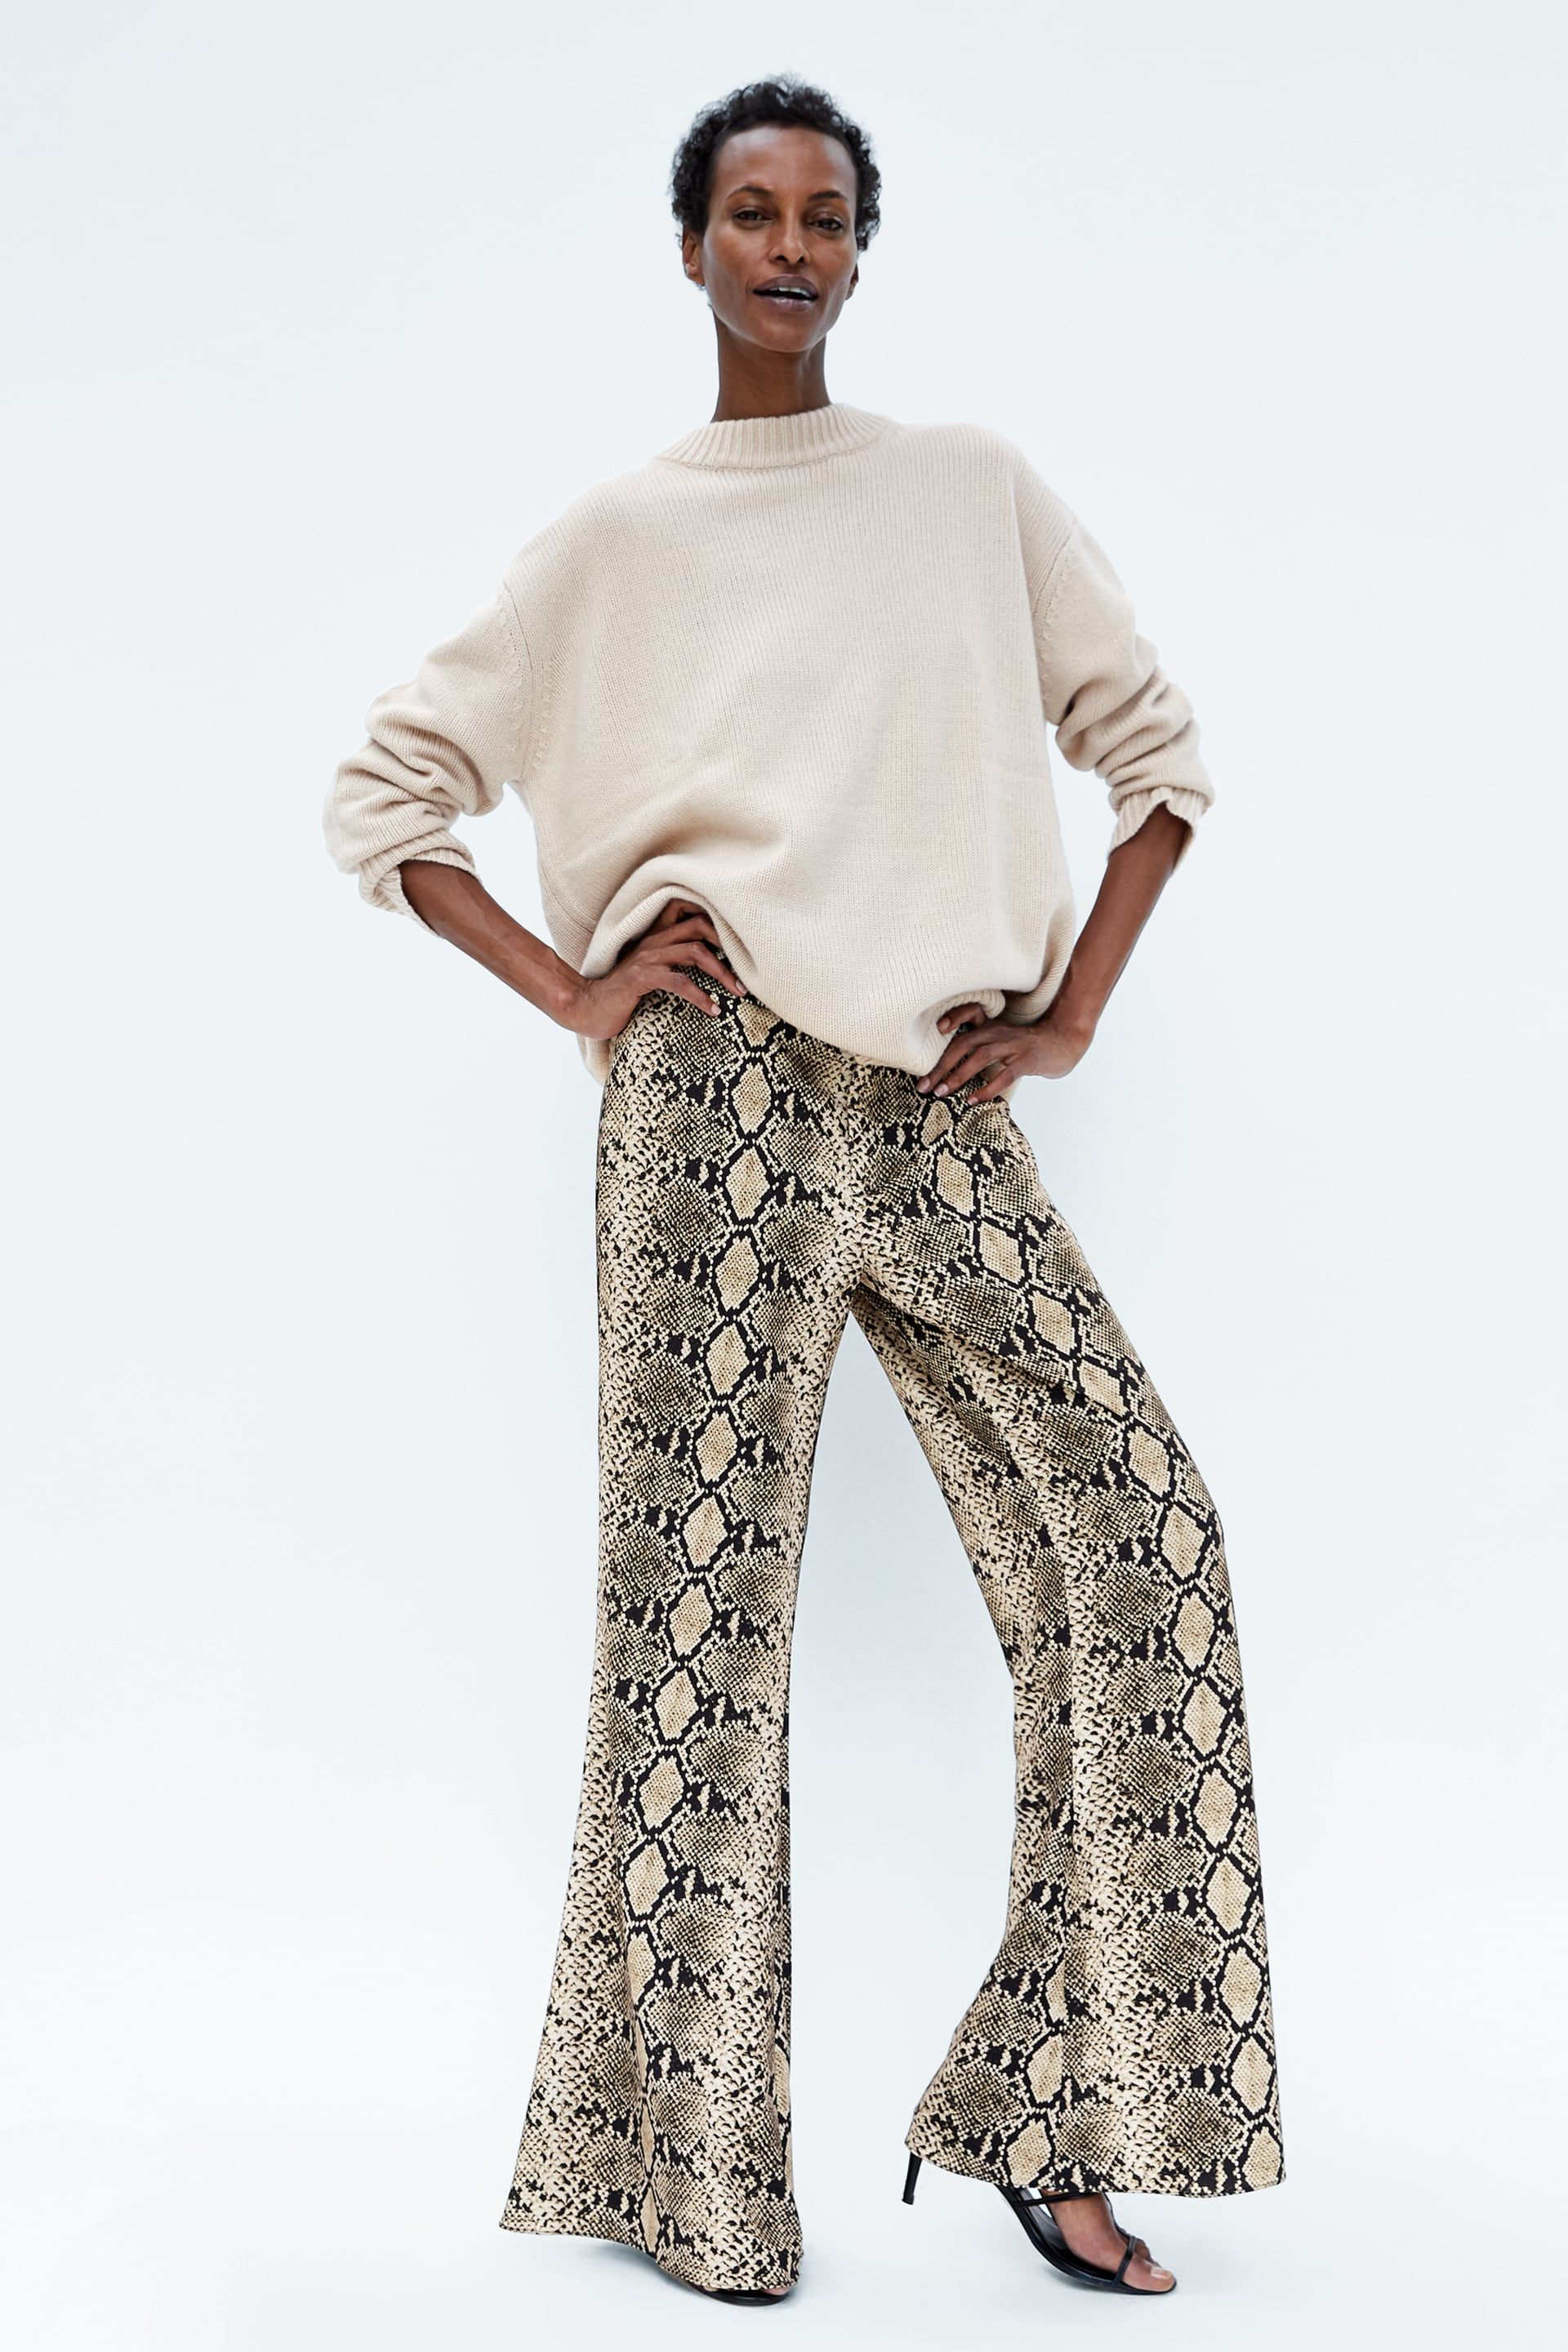 eb3b5cdc26 Image 1 of FLARED PANTS WITH SNAKESKIN PRINT from Zara | outfits in ...